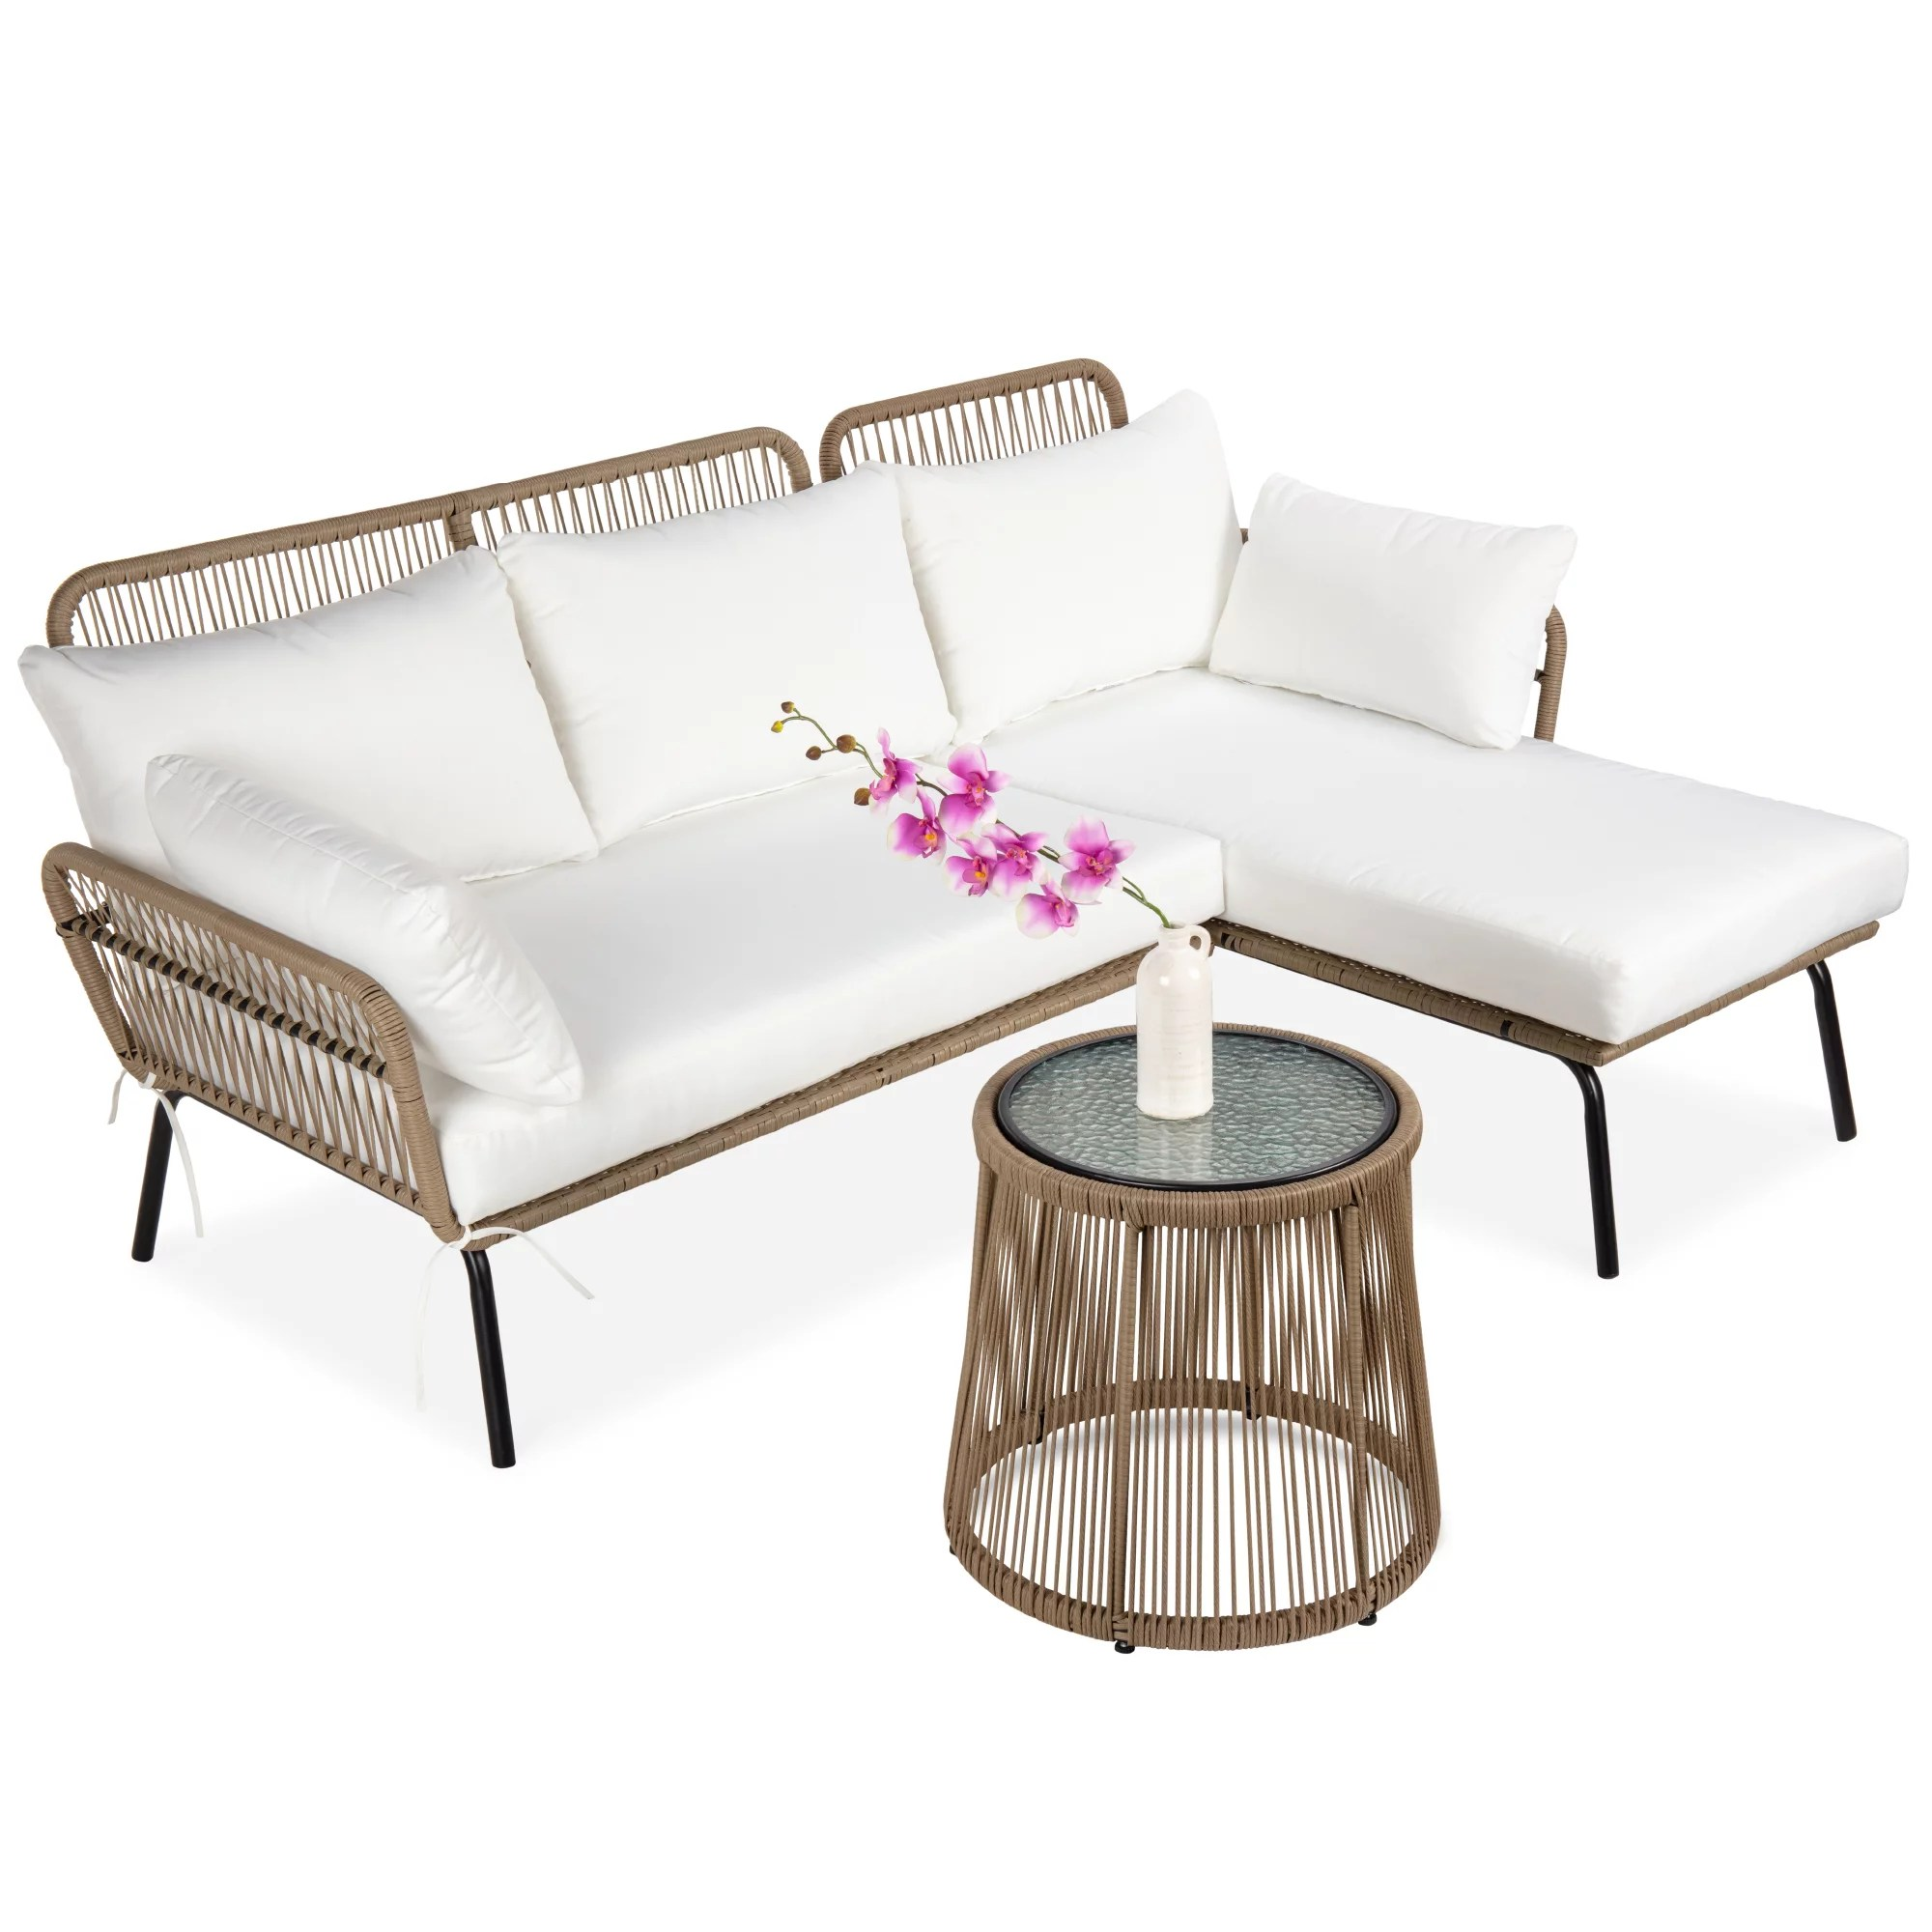 best choice products outdoor rope woven sectional patio furniture l shaped conversation set w cushions table white walmart com